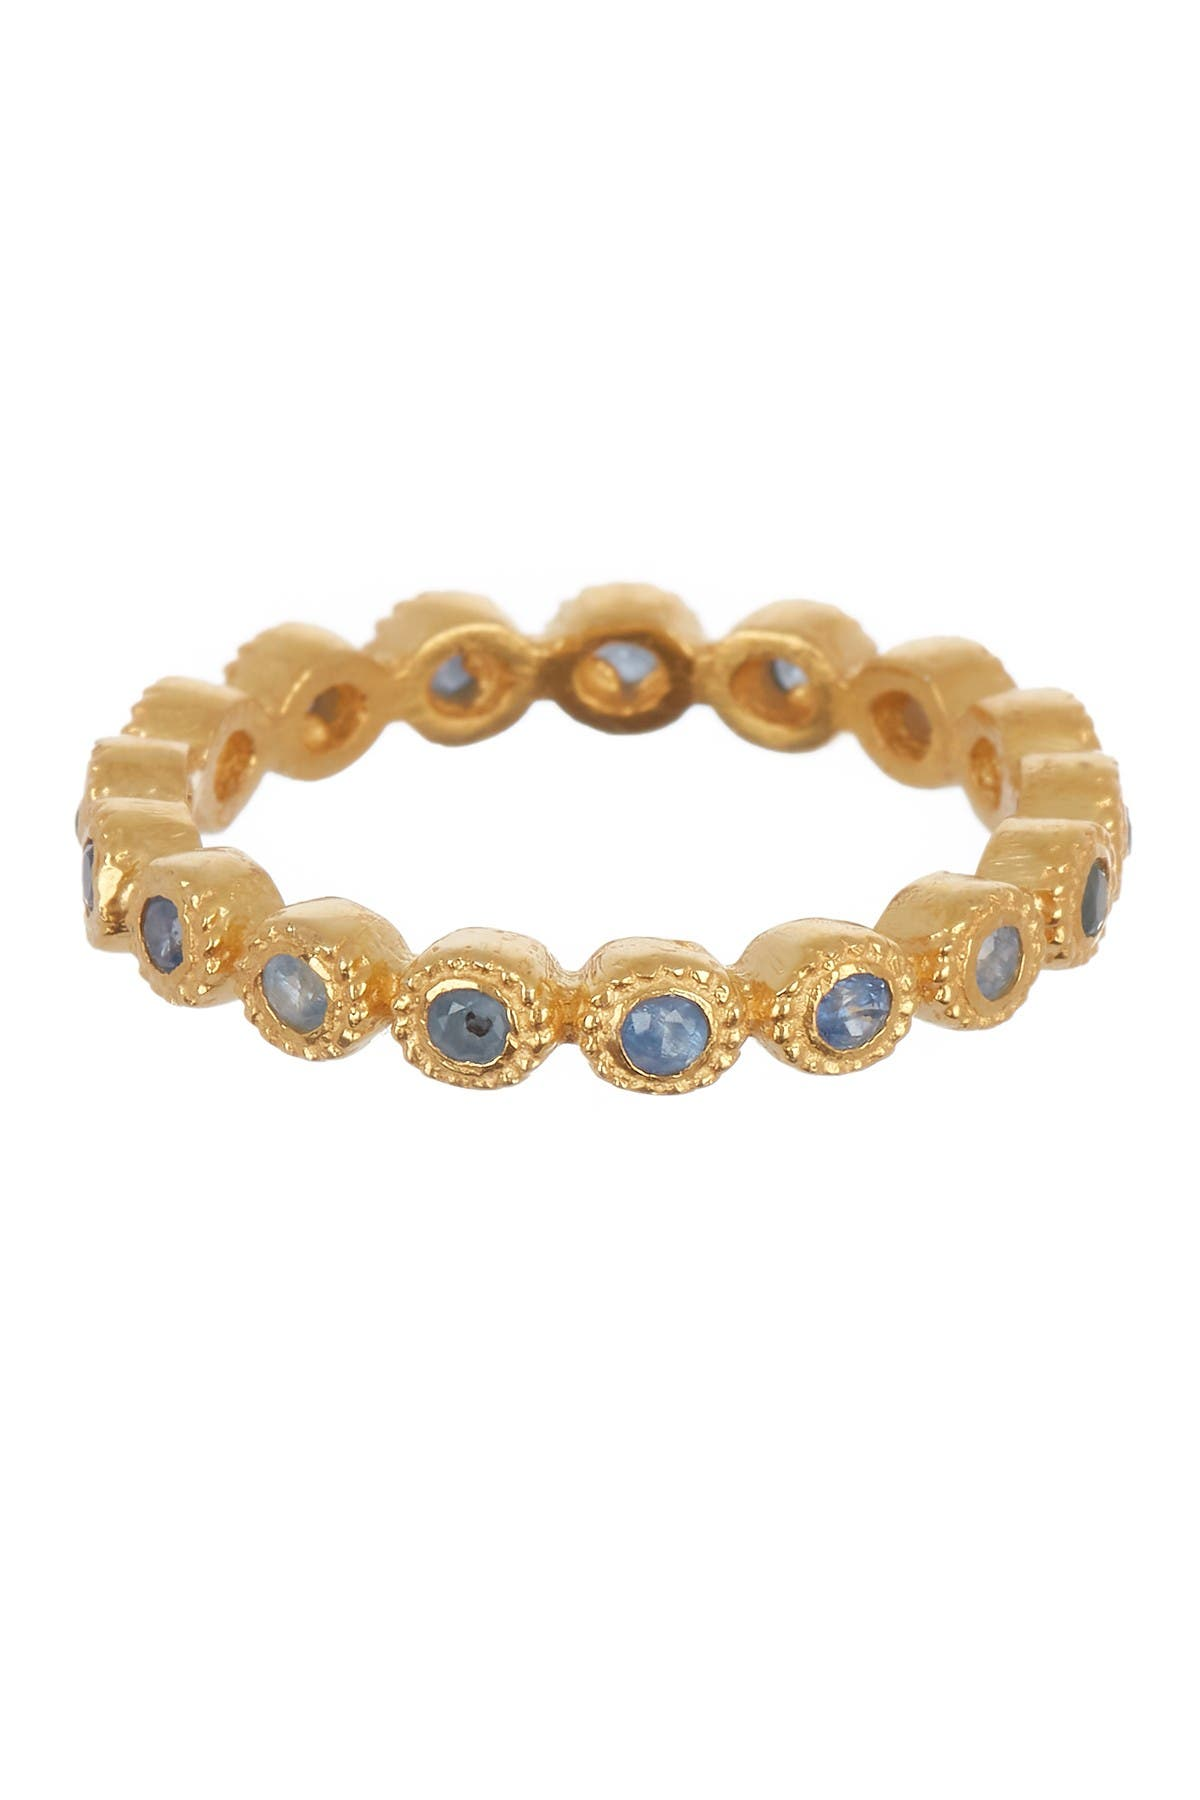 Image of Forever Creations USA Inc. Gold Vermeil Sterling Silver Blue Sapphire Stackable Ring